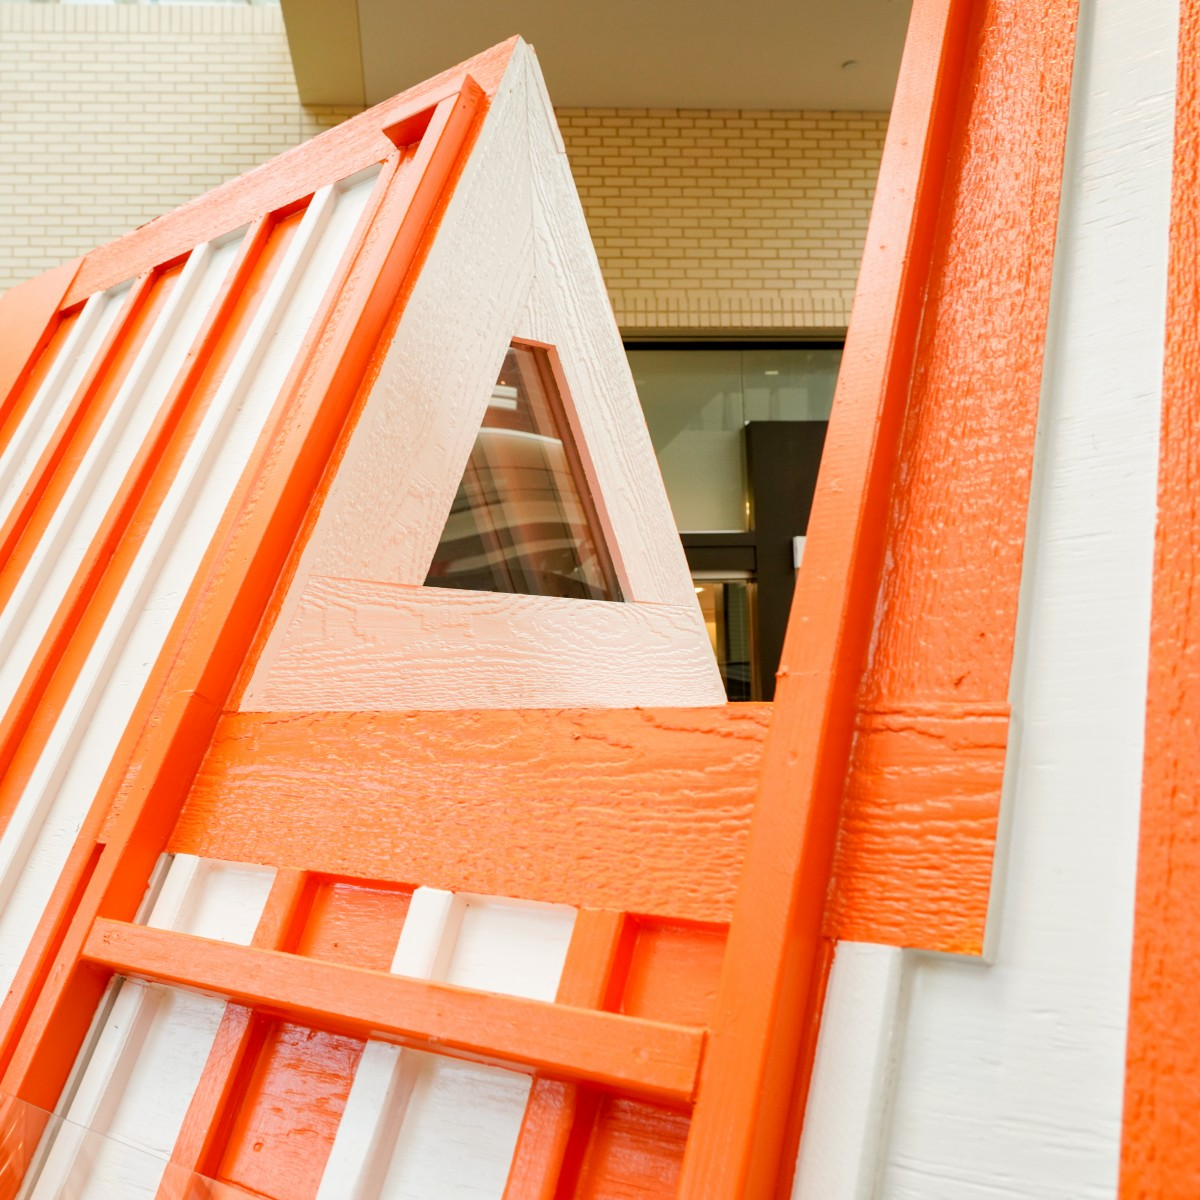 Whataburger Play House - 3